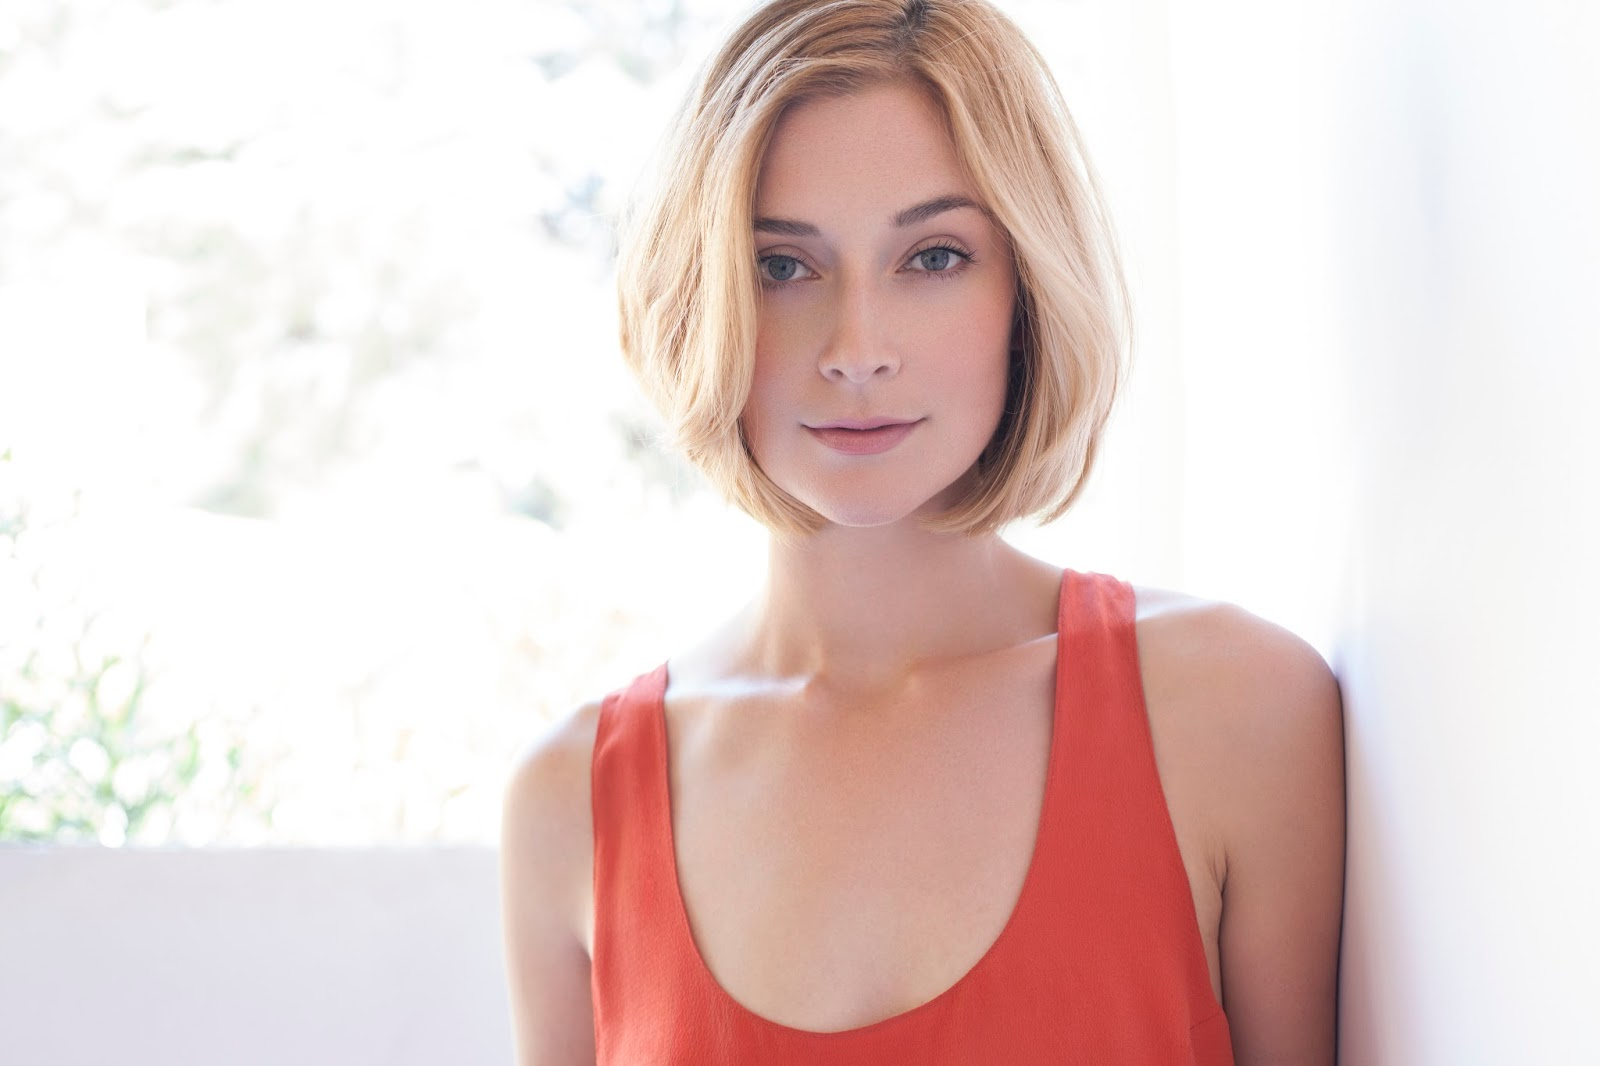 caitlin fitzgerald fotocaitlin fitzgerald husband, caitlin fitzgerald listal, caitlin fitzgerald foto, caitlin fitzgerald height and weight, caitlin fitzgerald imdb, caitlin fitzgerald twitter, caitlin fitzgerald, caitlin fitzgerald instagram, caitlin fitzgerald birthday, caitlin fitzgerald interview, caitlin fitzgerald boyfriend, caitlin fitzgerald bio, caitlin fitzgerald dating, caitlin fitzgerald nudography, caitlin fitzgerald pictures